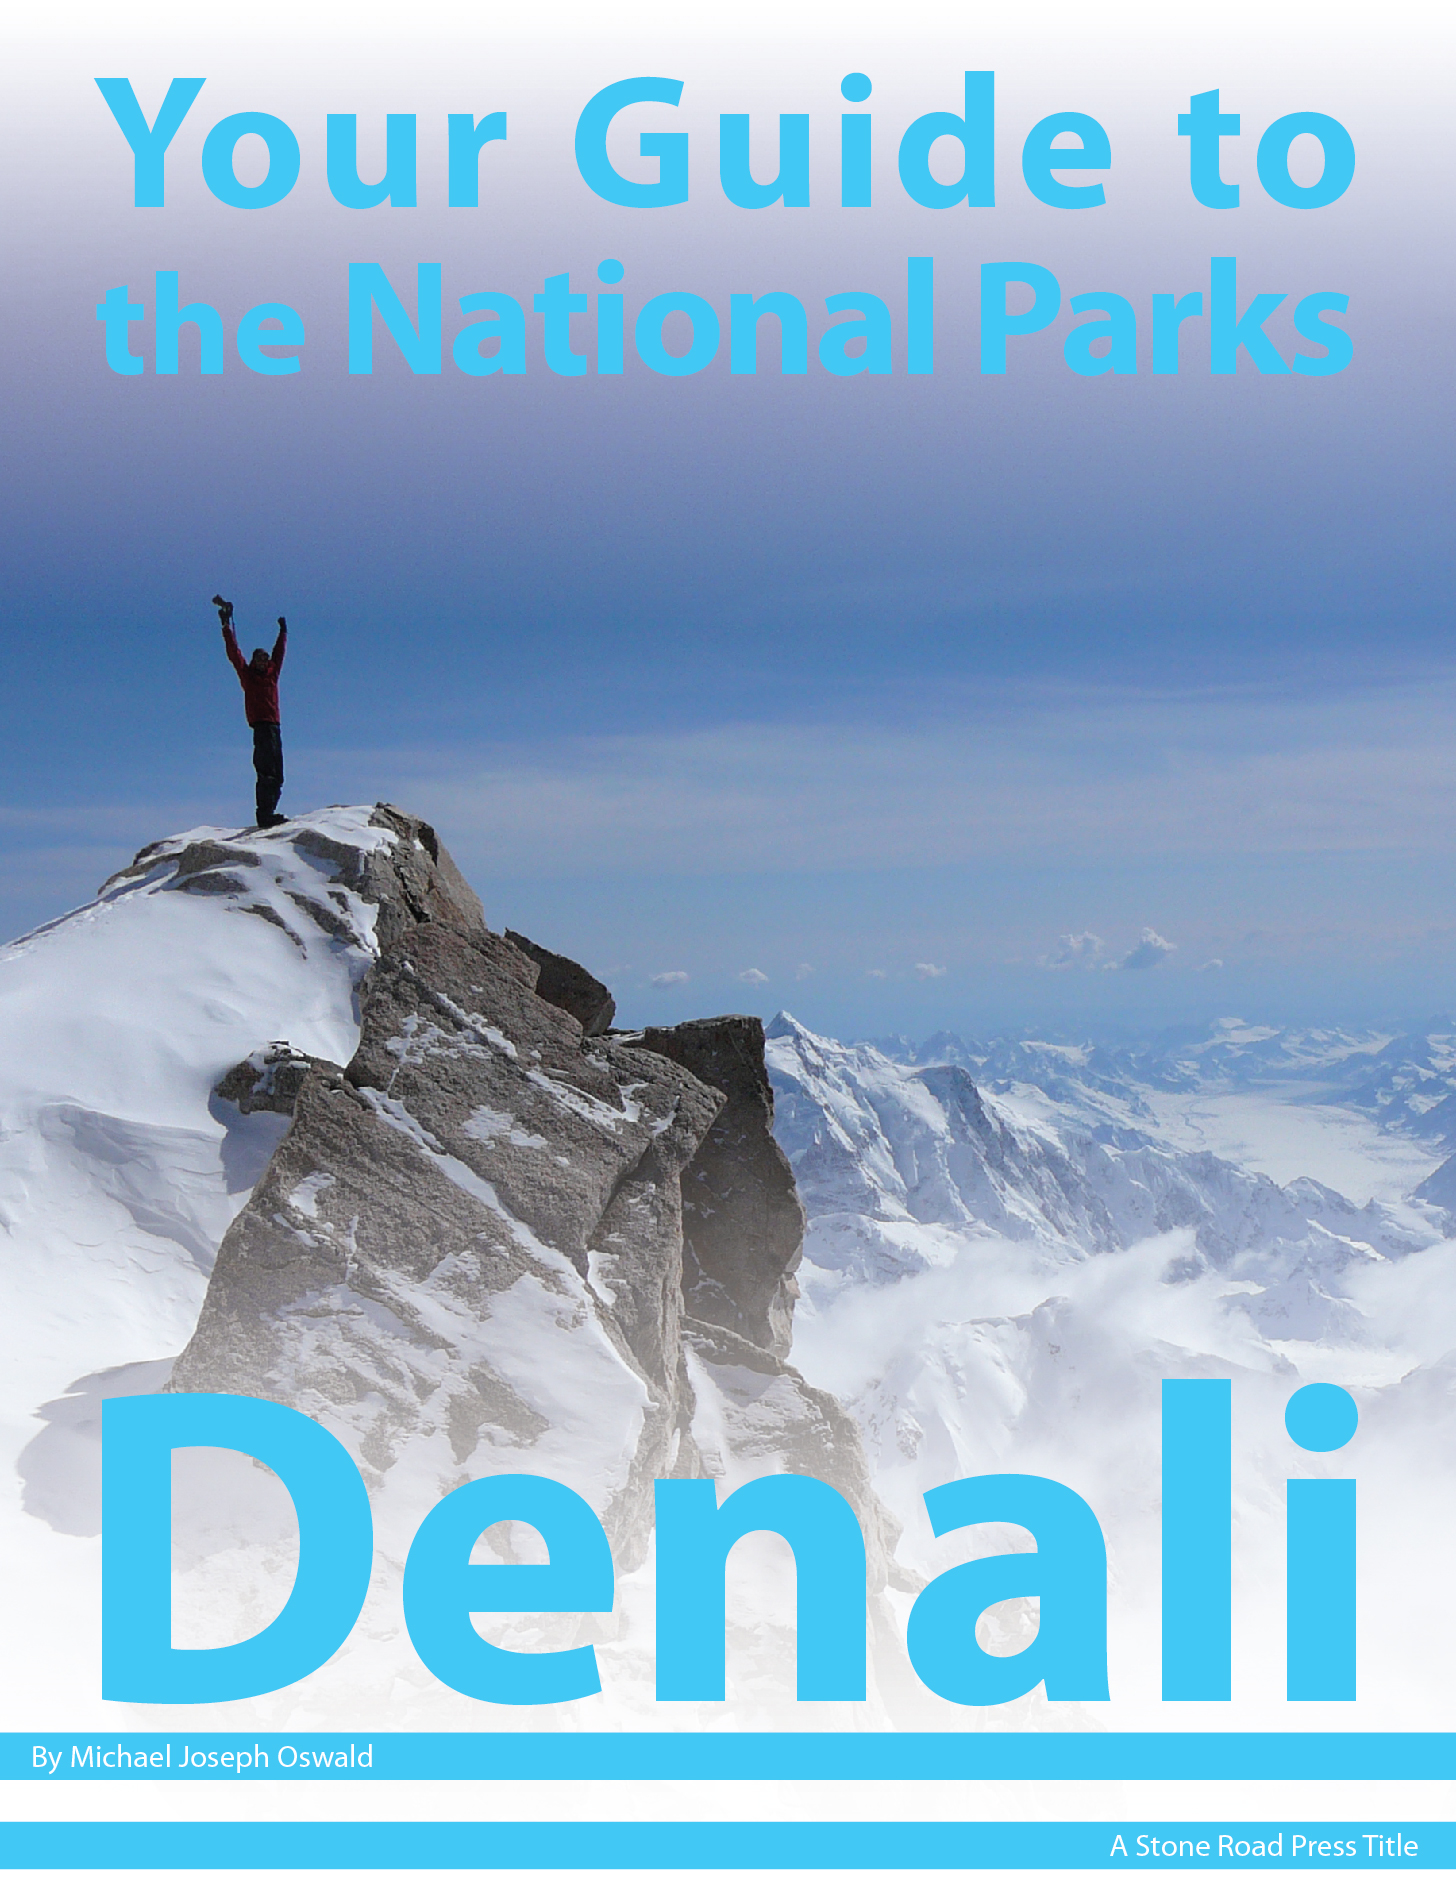 Your Guide to Denali National Park By: Michael Joseph Oswald